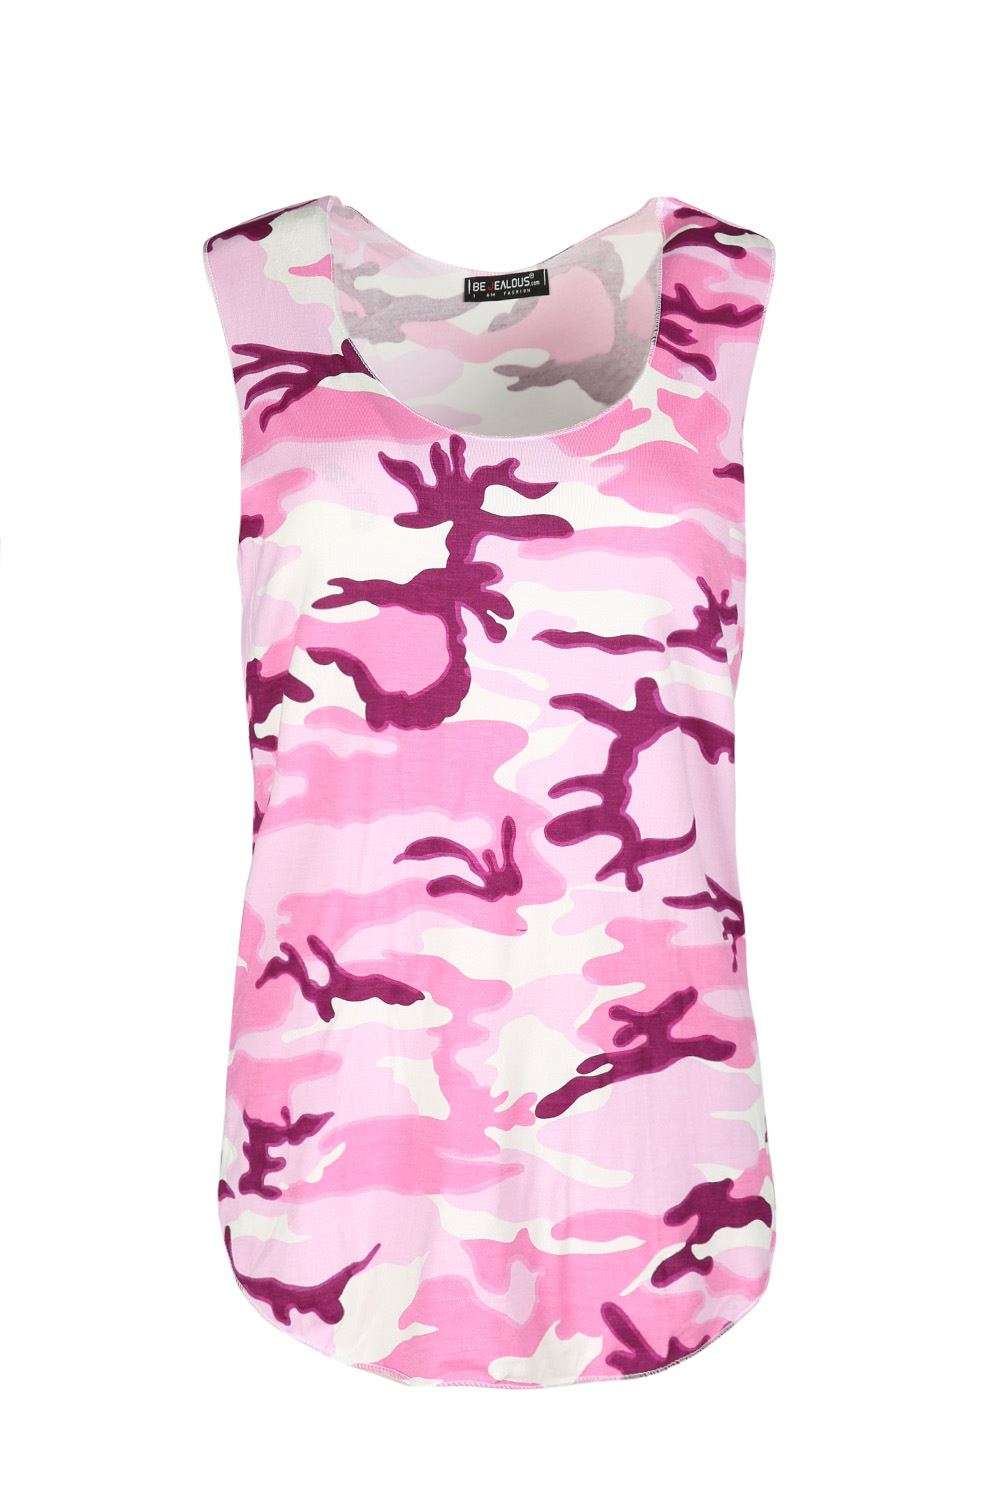 New-Ladies-Womens-Army-Camouflage-Leopard-Print-Sleeveless-Casual-Vest-Top-8-14